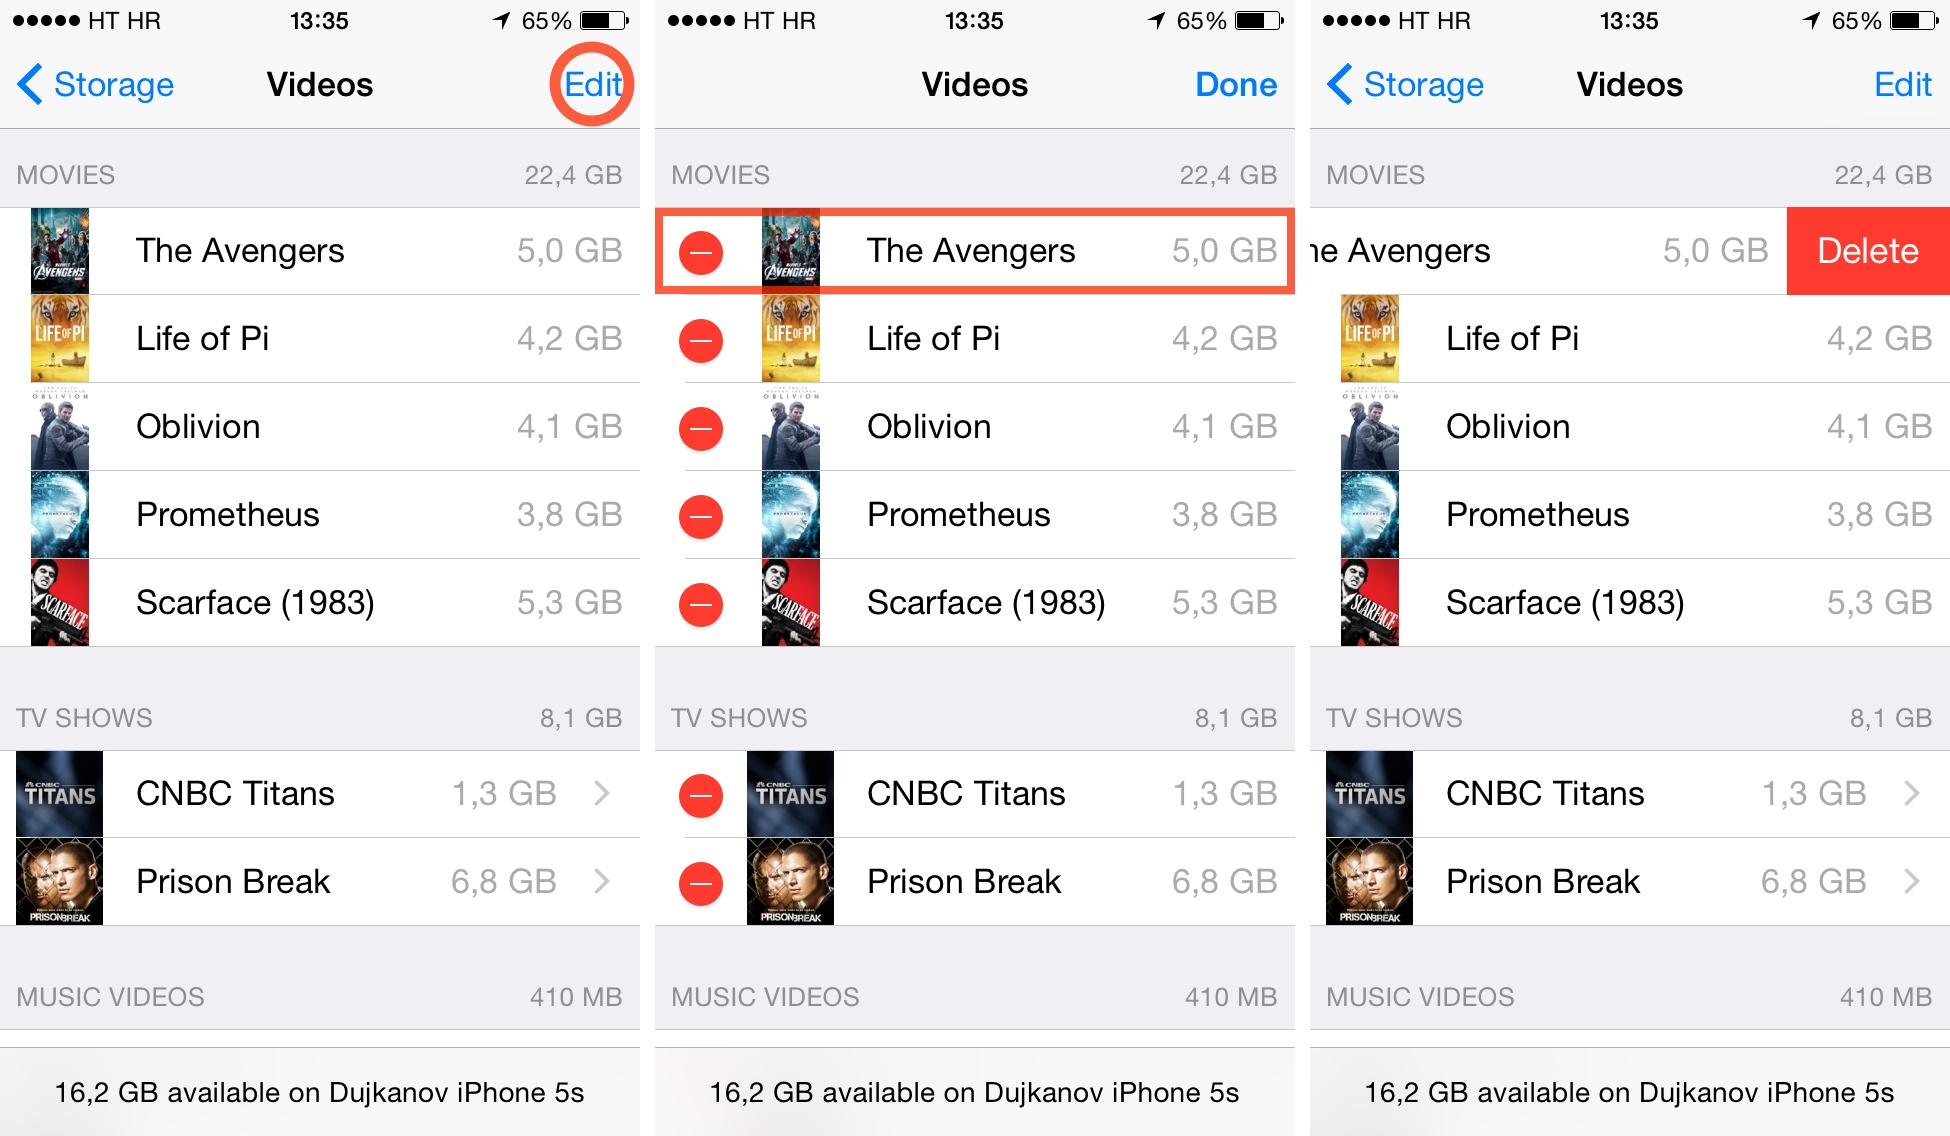 How To Permanently Delete Videos From Iphone Without Restored